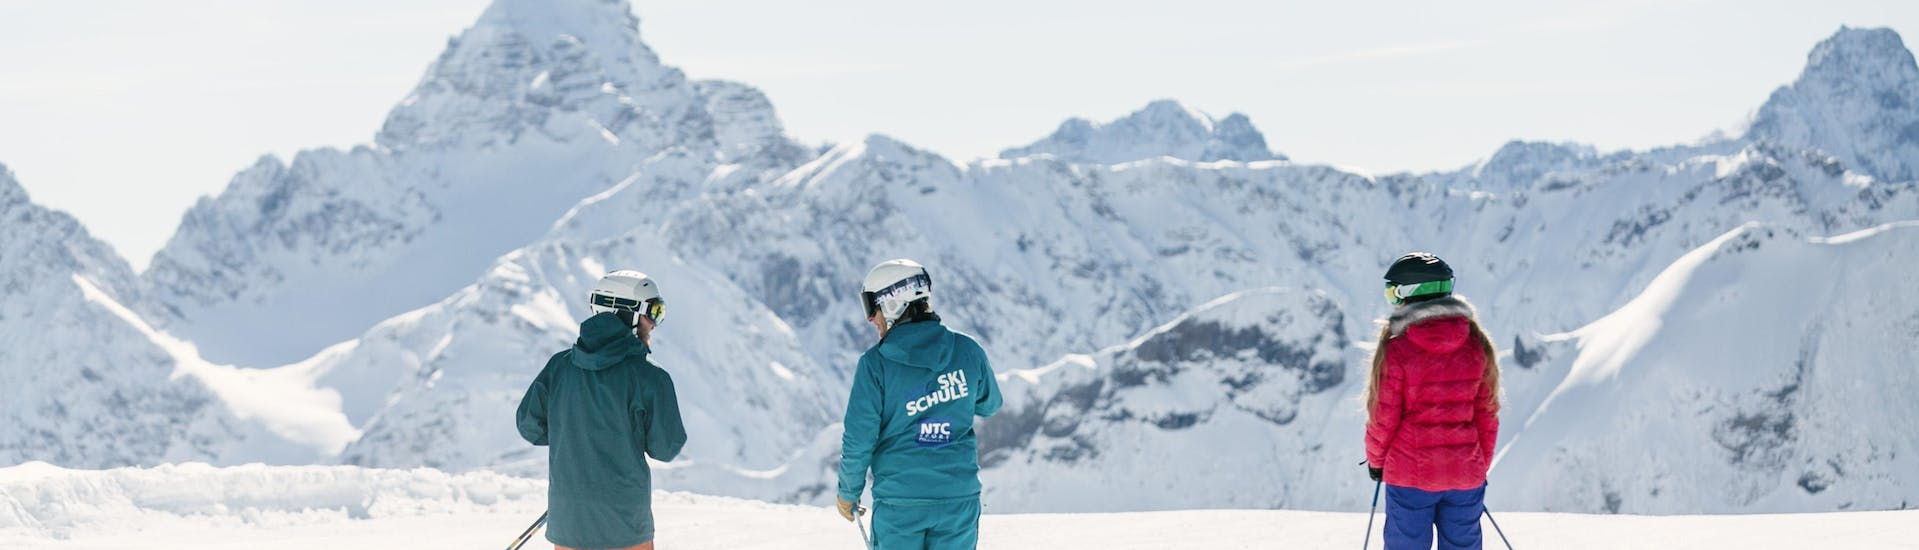 Two adults are learning how to ski for the first time during the Private Ski Lessons for Adults - All Levels with support from the ski instructor from the ski school NTC Skischule Oberstdorf.